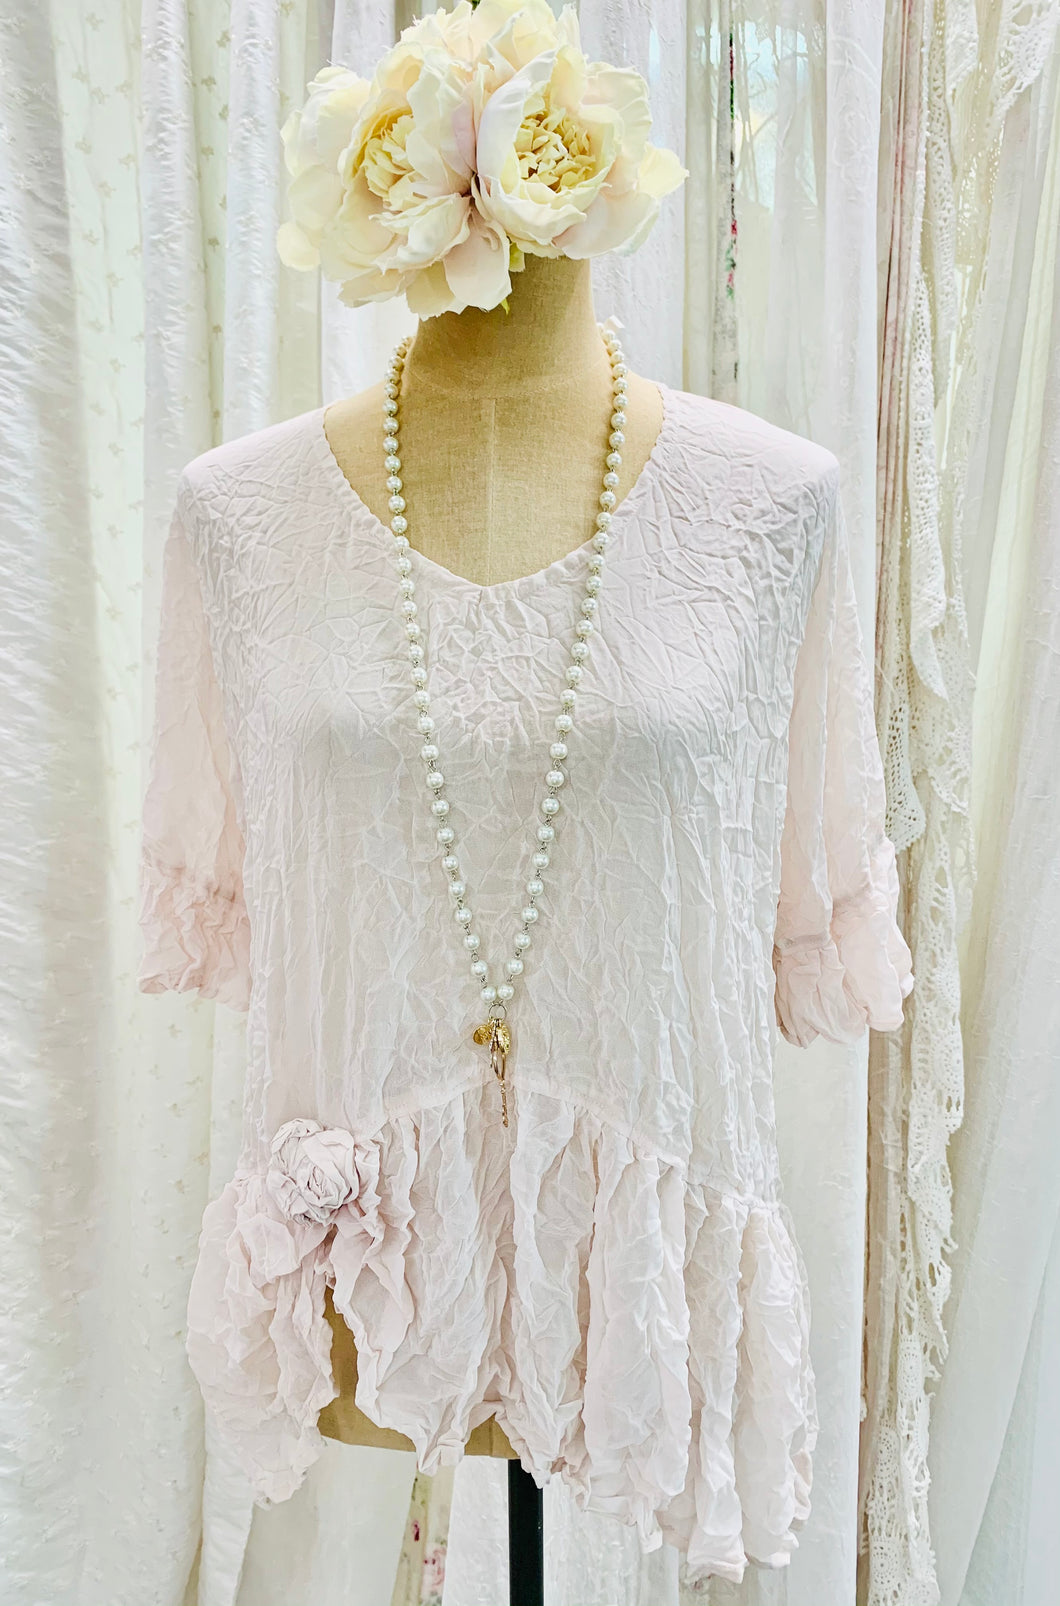 Blush rose top